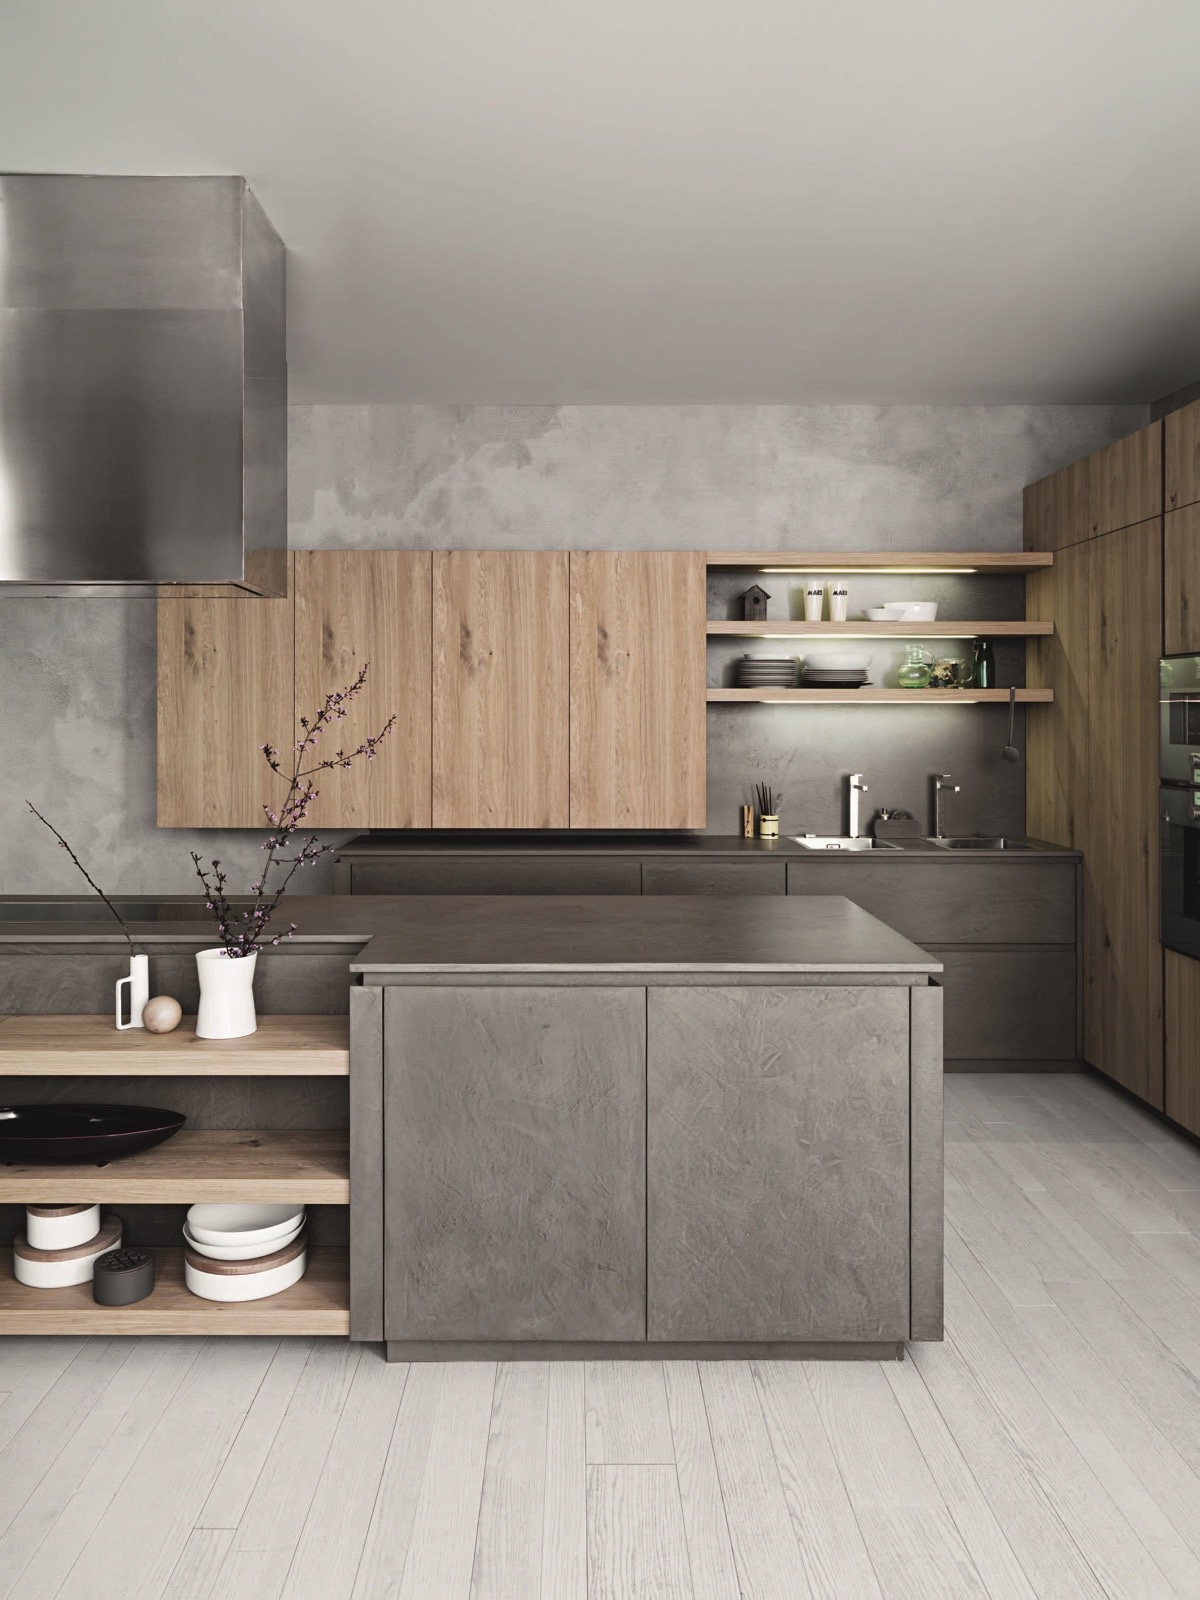 cafe-style-kitchen-steel-and-wood-grey-and-wood